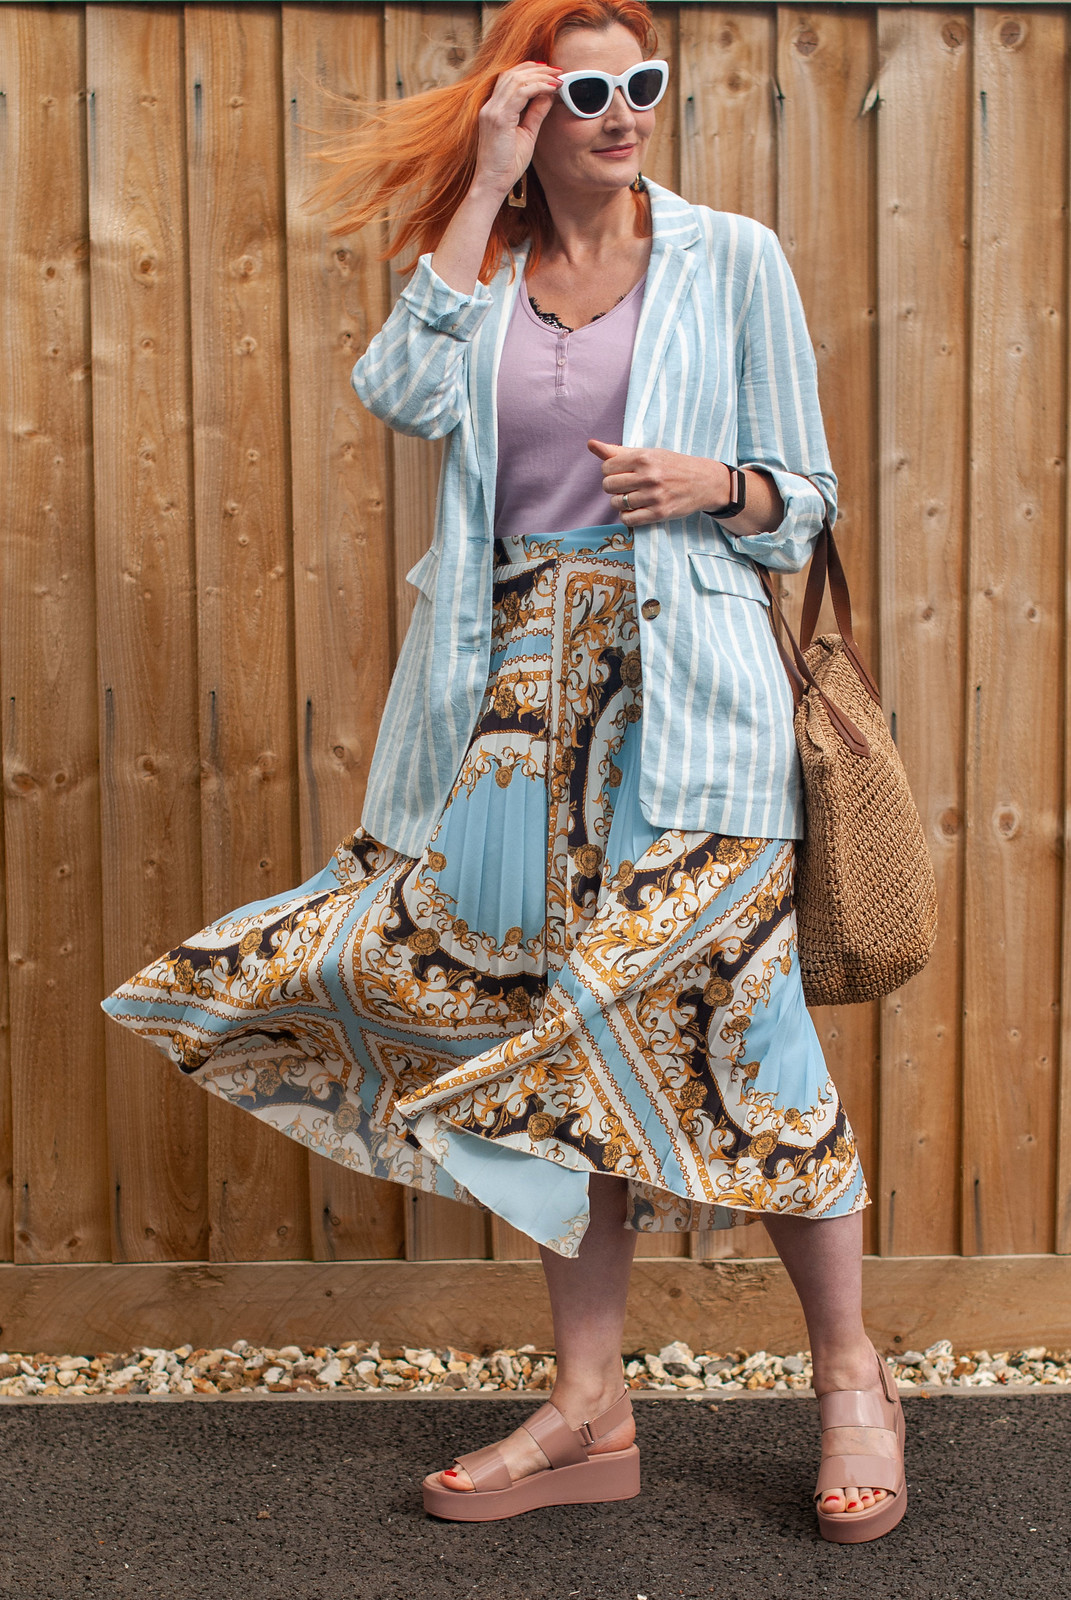 How to Style a Patterned Pleated Midi Skirt in Summer   Not Dressed As Lamb, Over 40 Fashion and Style